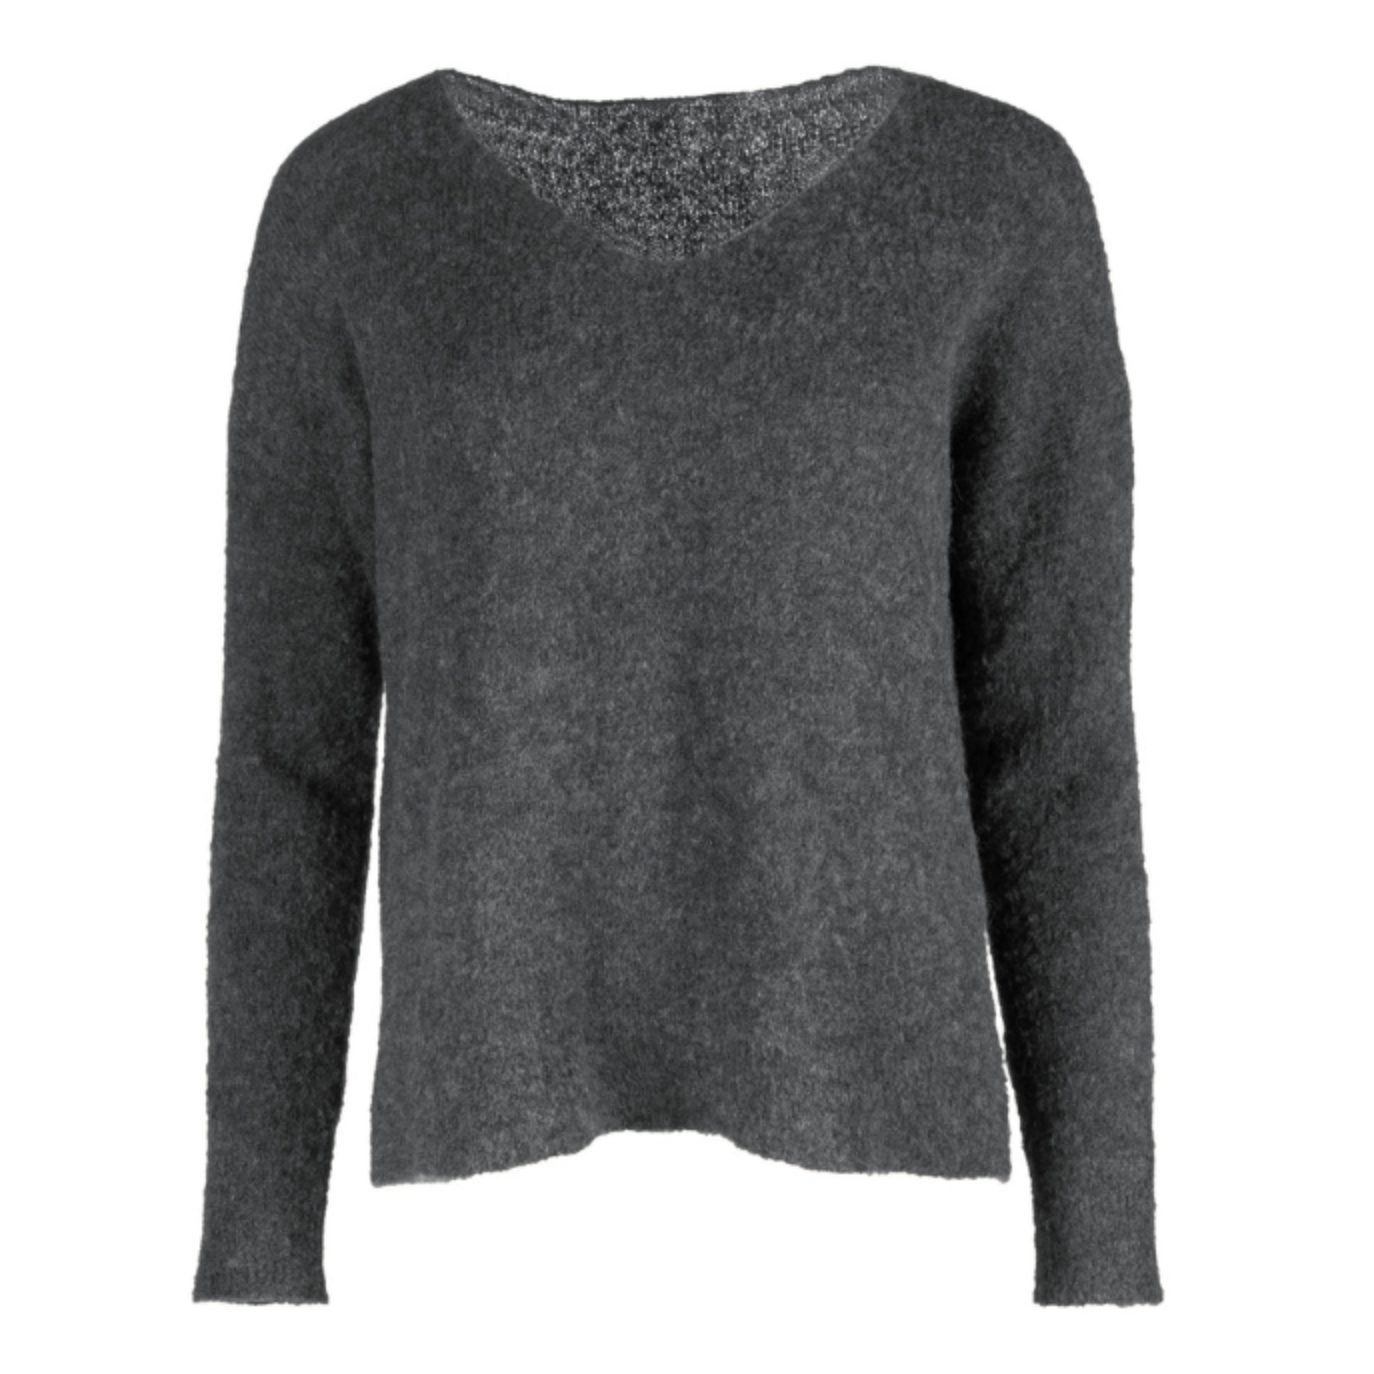 Featherweight Alpaca V-Neck Pullover from Peruvian Connection